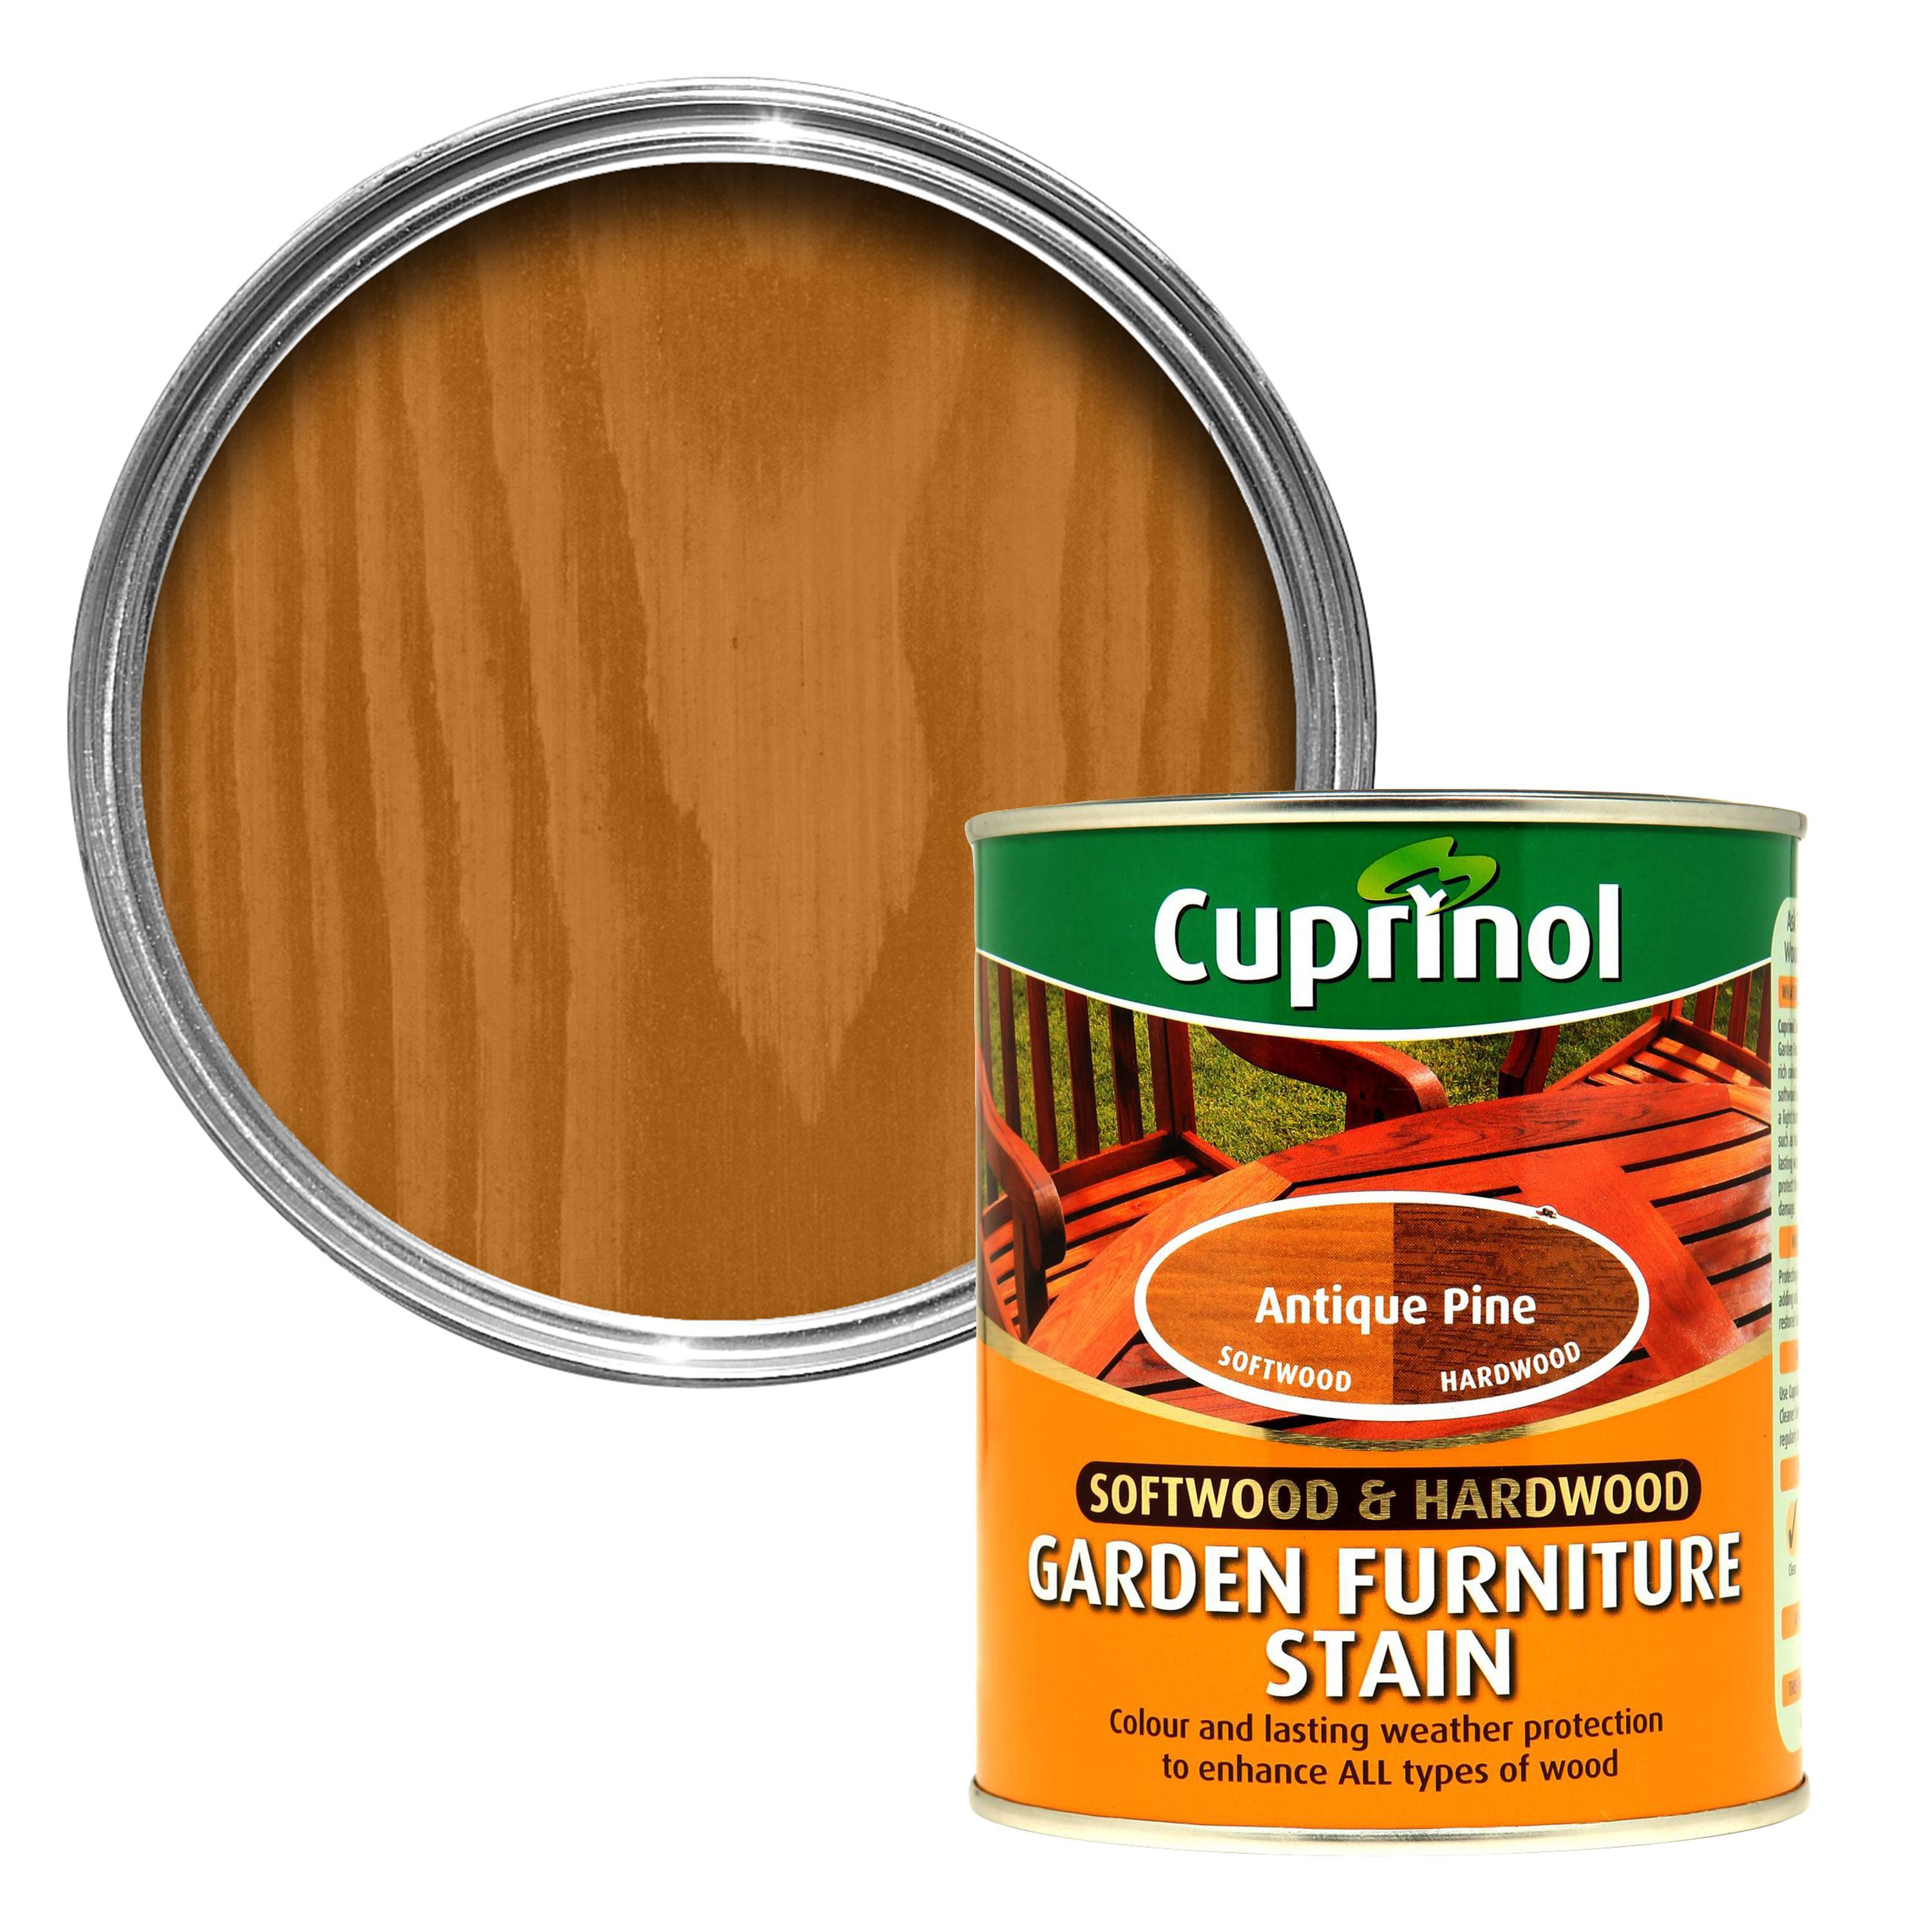 cuprinol softwood hardwood antique pine garden furniture stain 075l departments diy at bq - Garden Furniture Stain